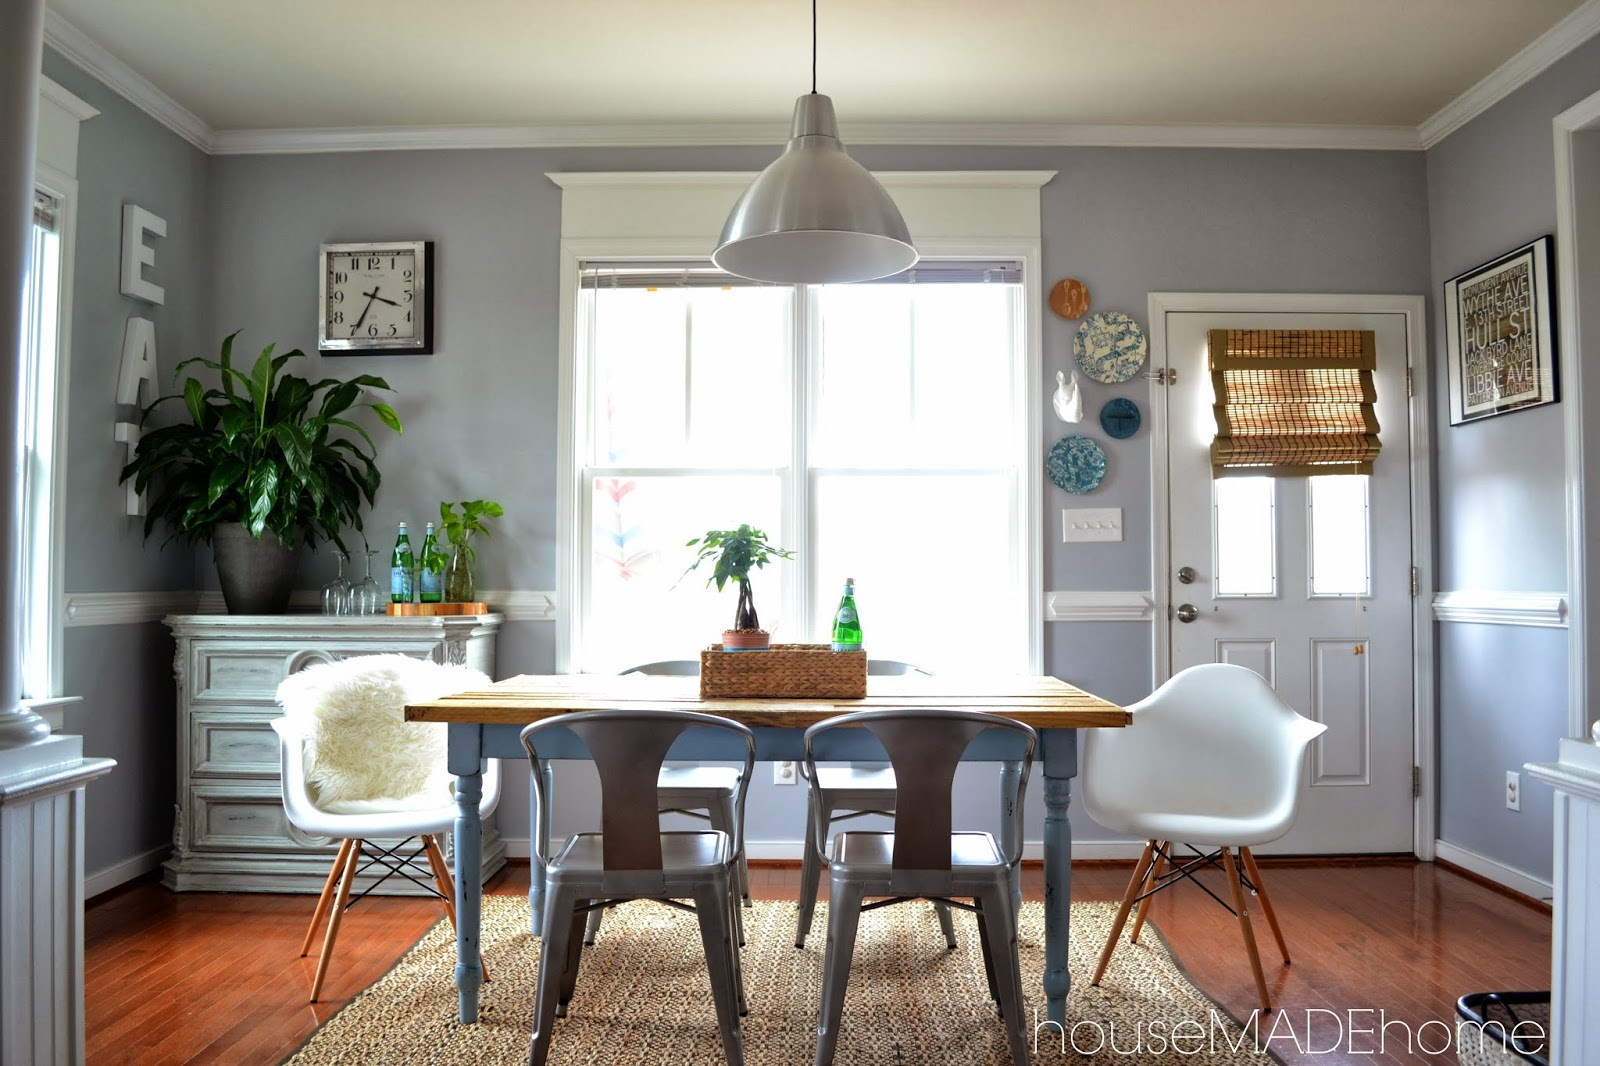 MCM+Chairs | Home, Dining room design, Home decor